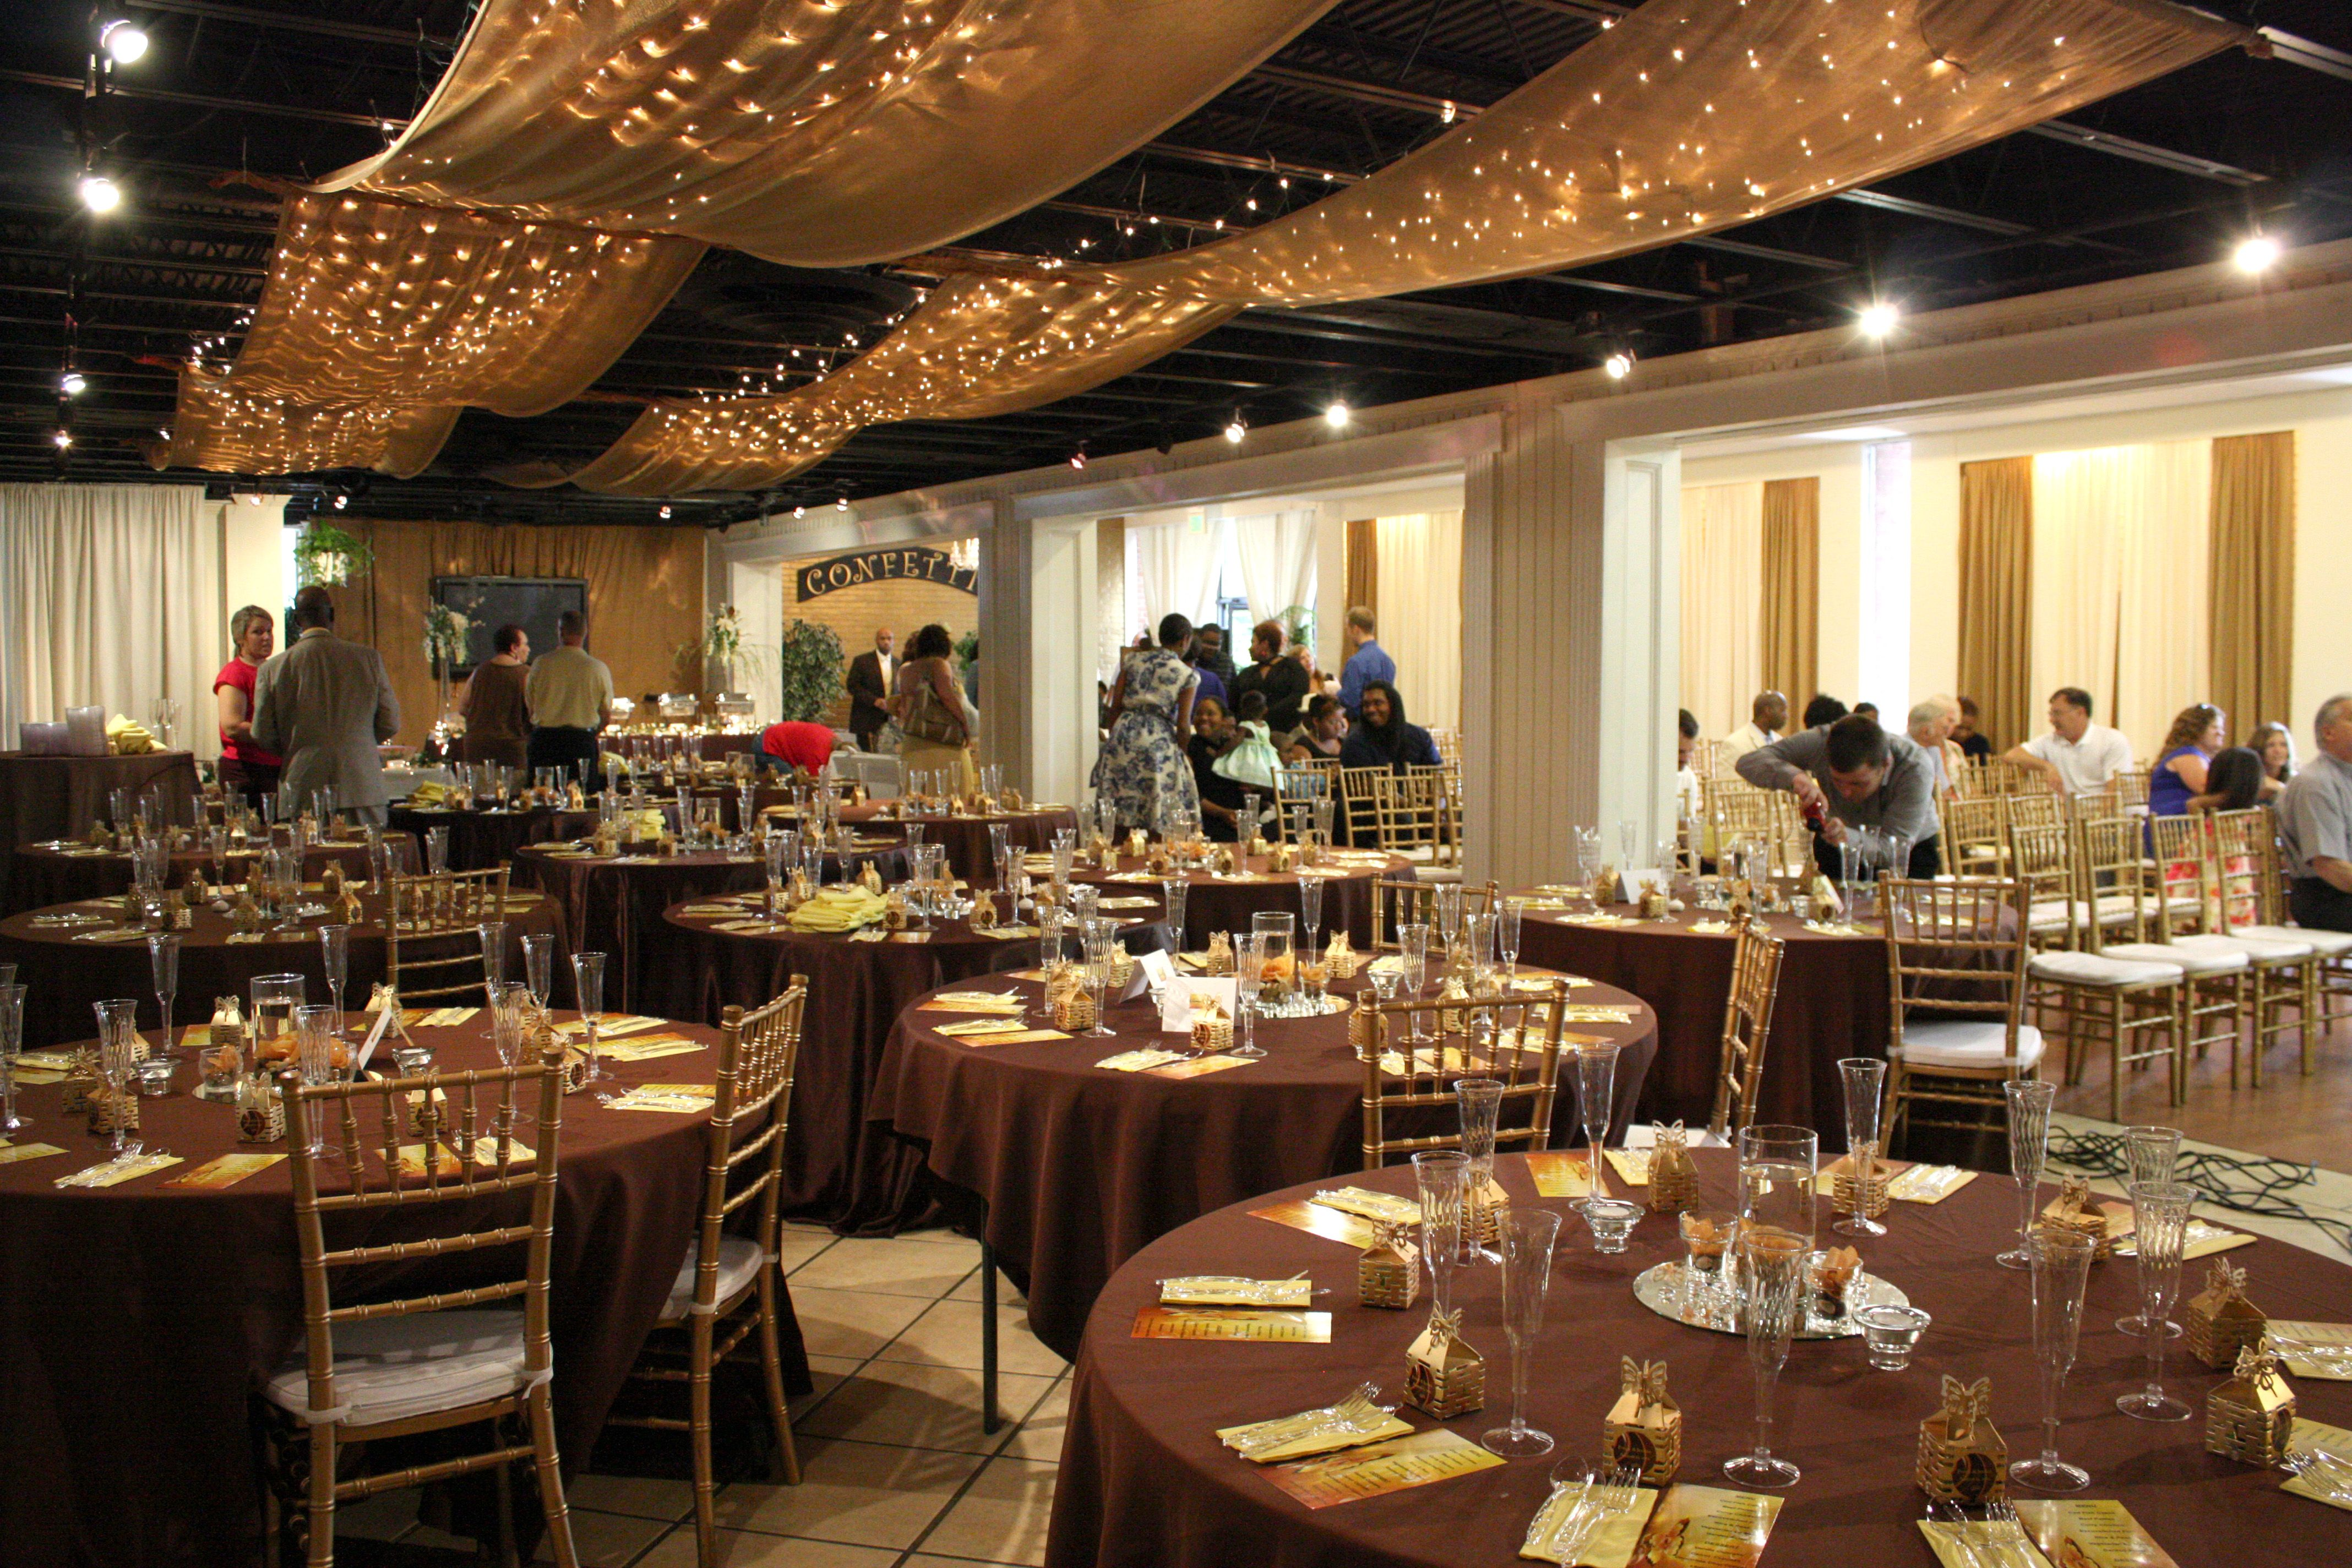 Brown And Gold Wedding Ideas: Brown/Gold/Yellow Wedding Decor